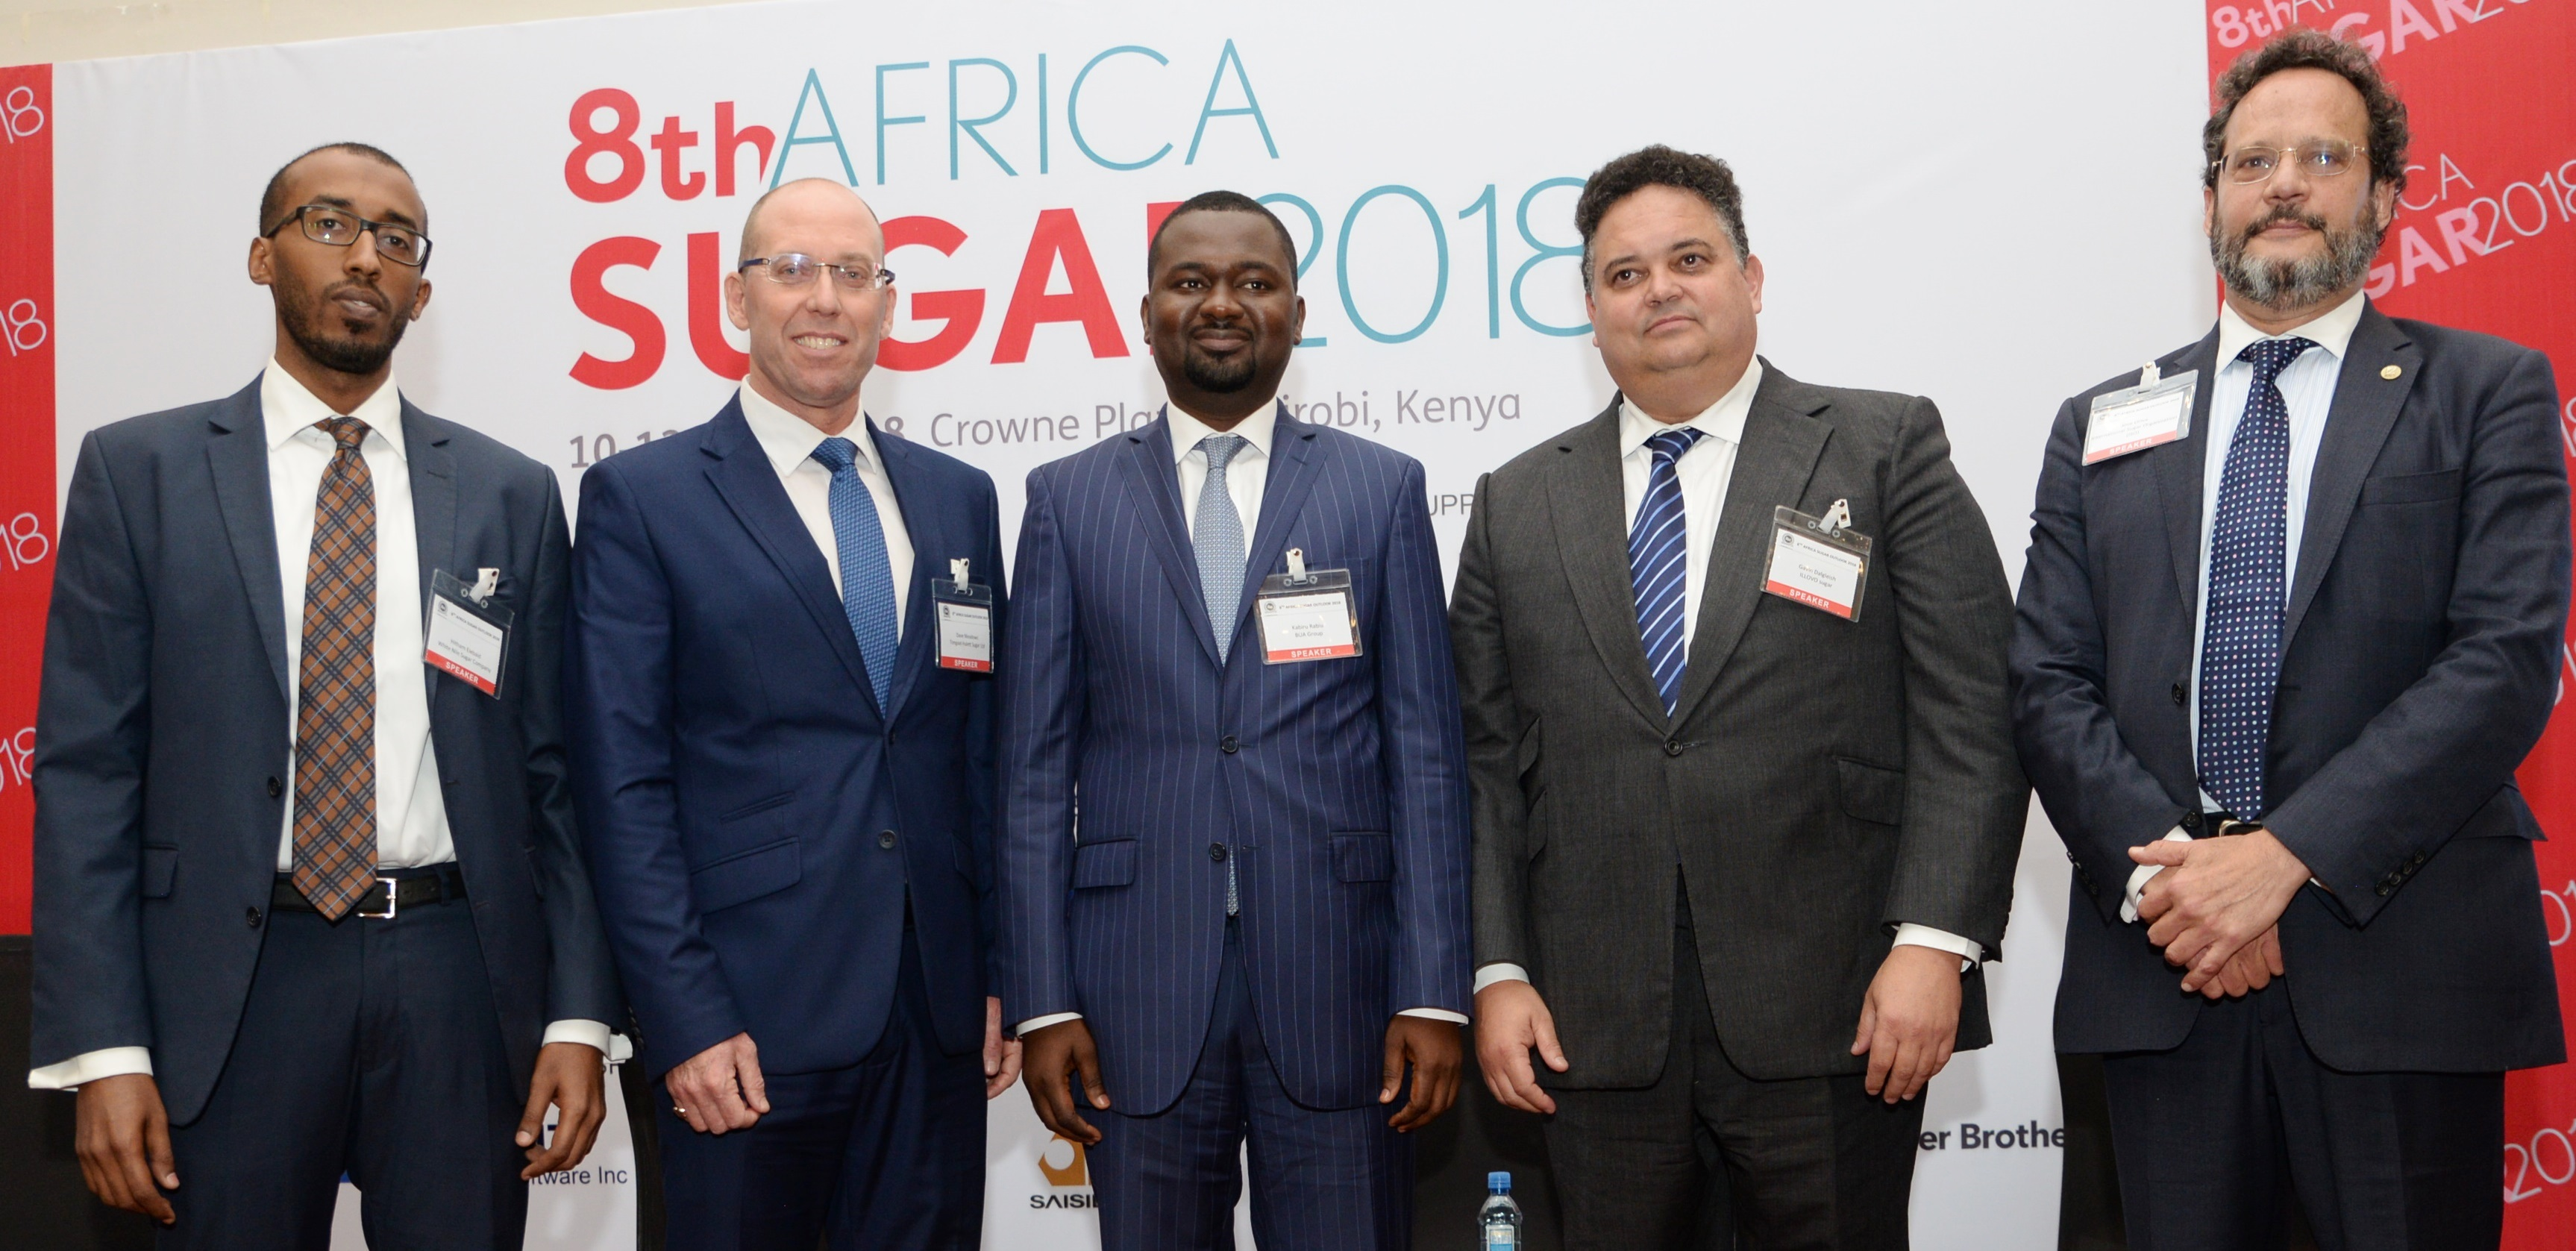 L - R: Hitham Elebaid, Business Planning Head, White Nile Sugar Company, Sudan; Dave Meadows, Director, Strategic Development & Business Excellence Agri Processing, Tongaat Hulett, South Africa; Kabiru Rabiu, Group Executive Director BUA Group, Nigeria; Gavin Dalgleish, Group Managing Director ILLOVO sugar, South Africa and Jose Orive, Executive Director, International Sugar Organization (ISO)at the 8th Africa Sugar Conference 2018 in Kenya.